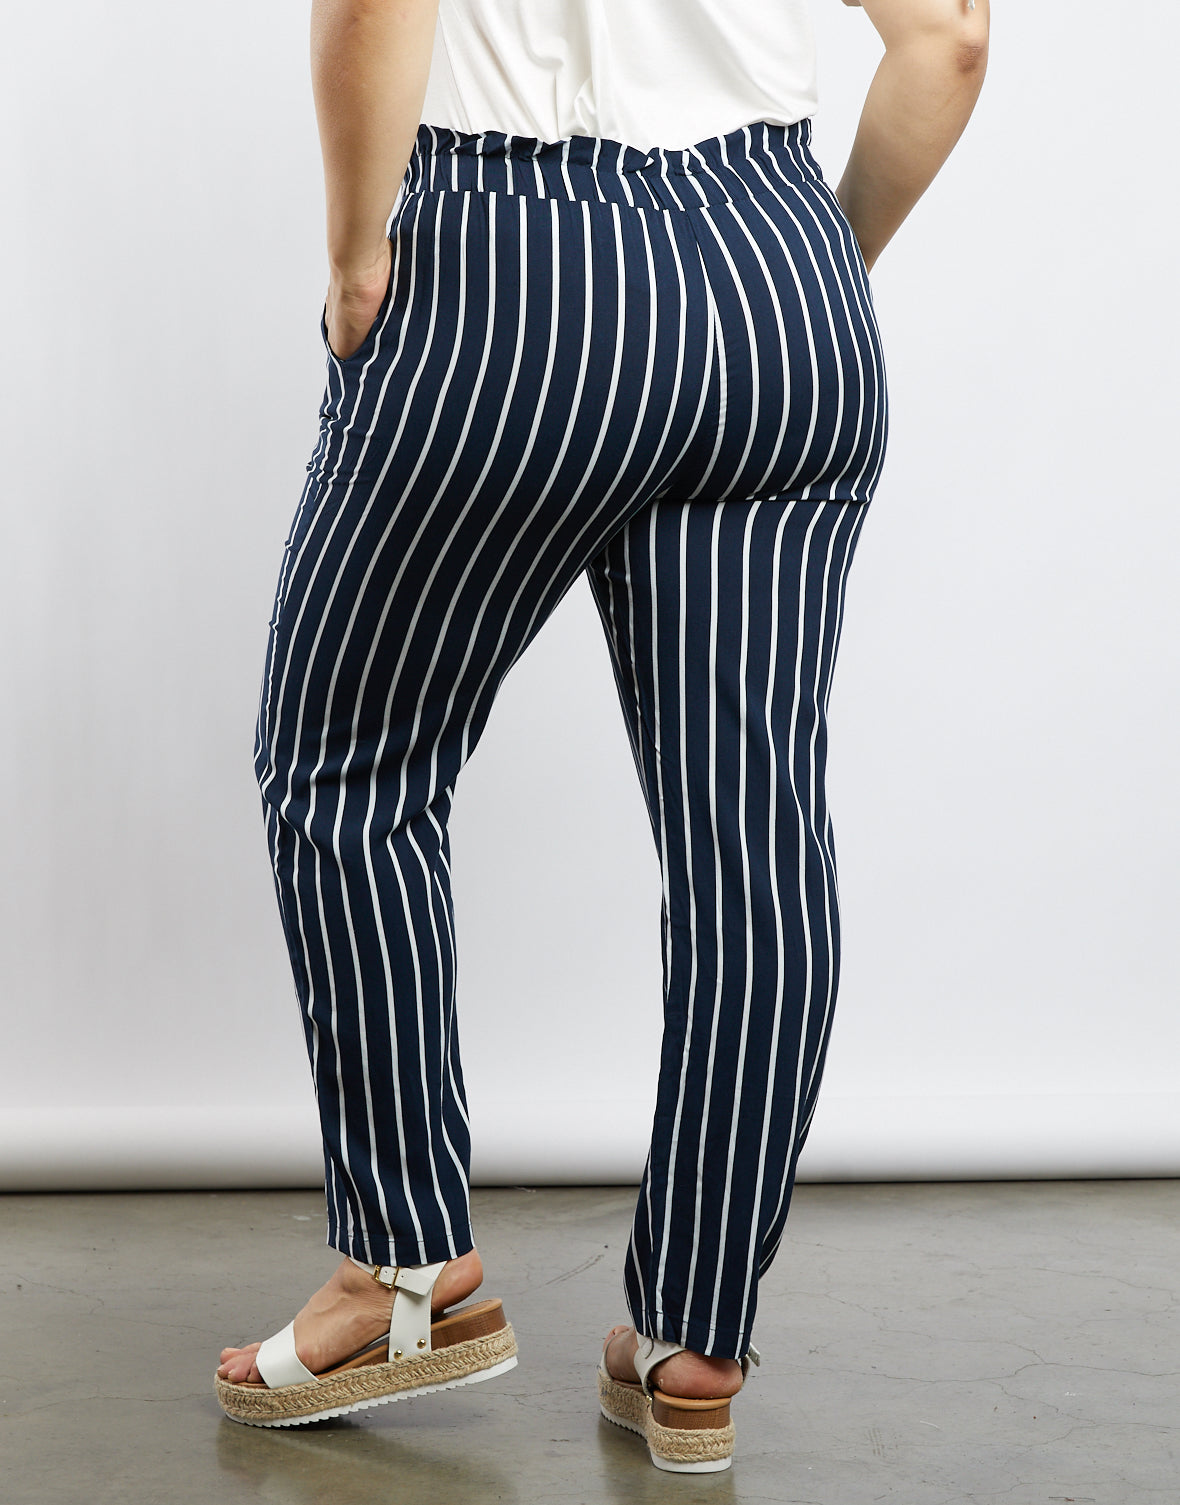 Plus Size Amelia Pinstriped Pants